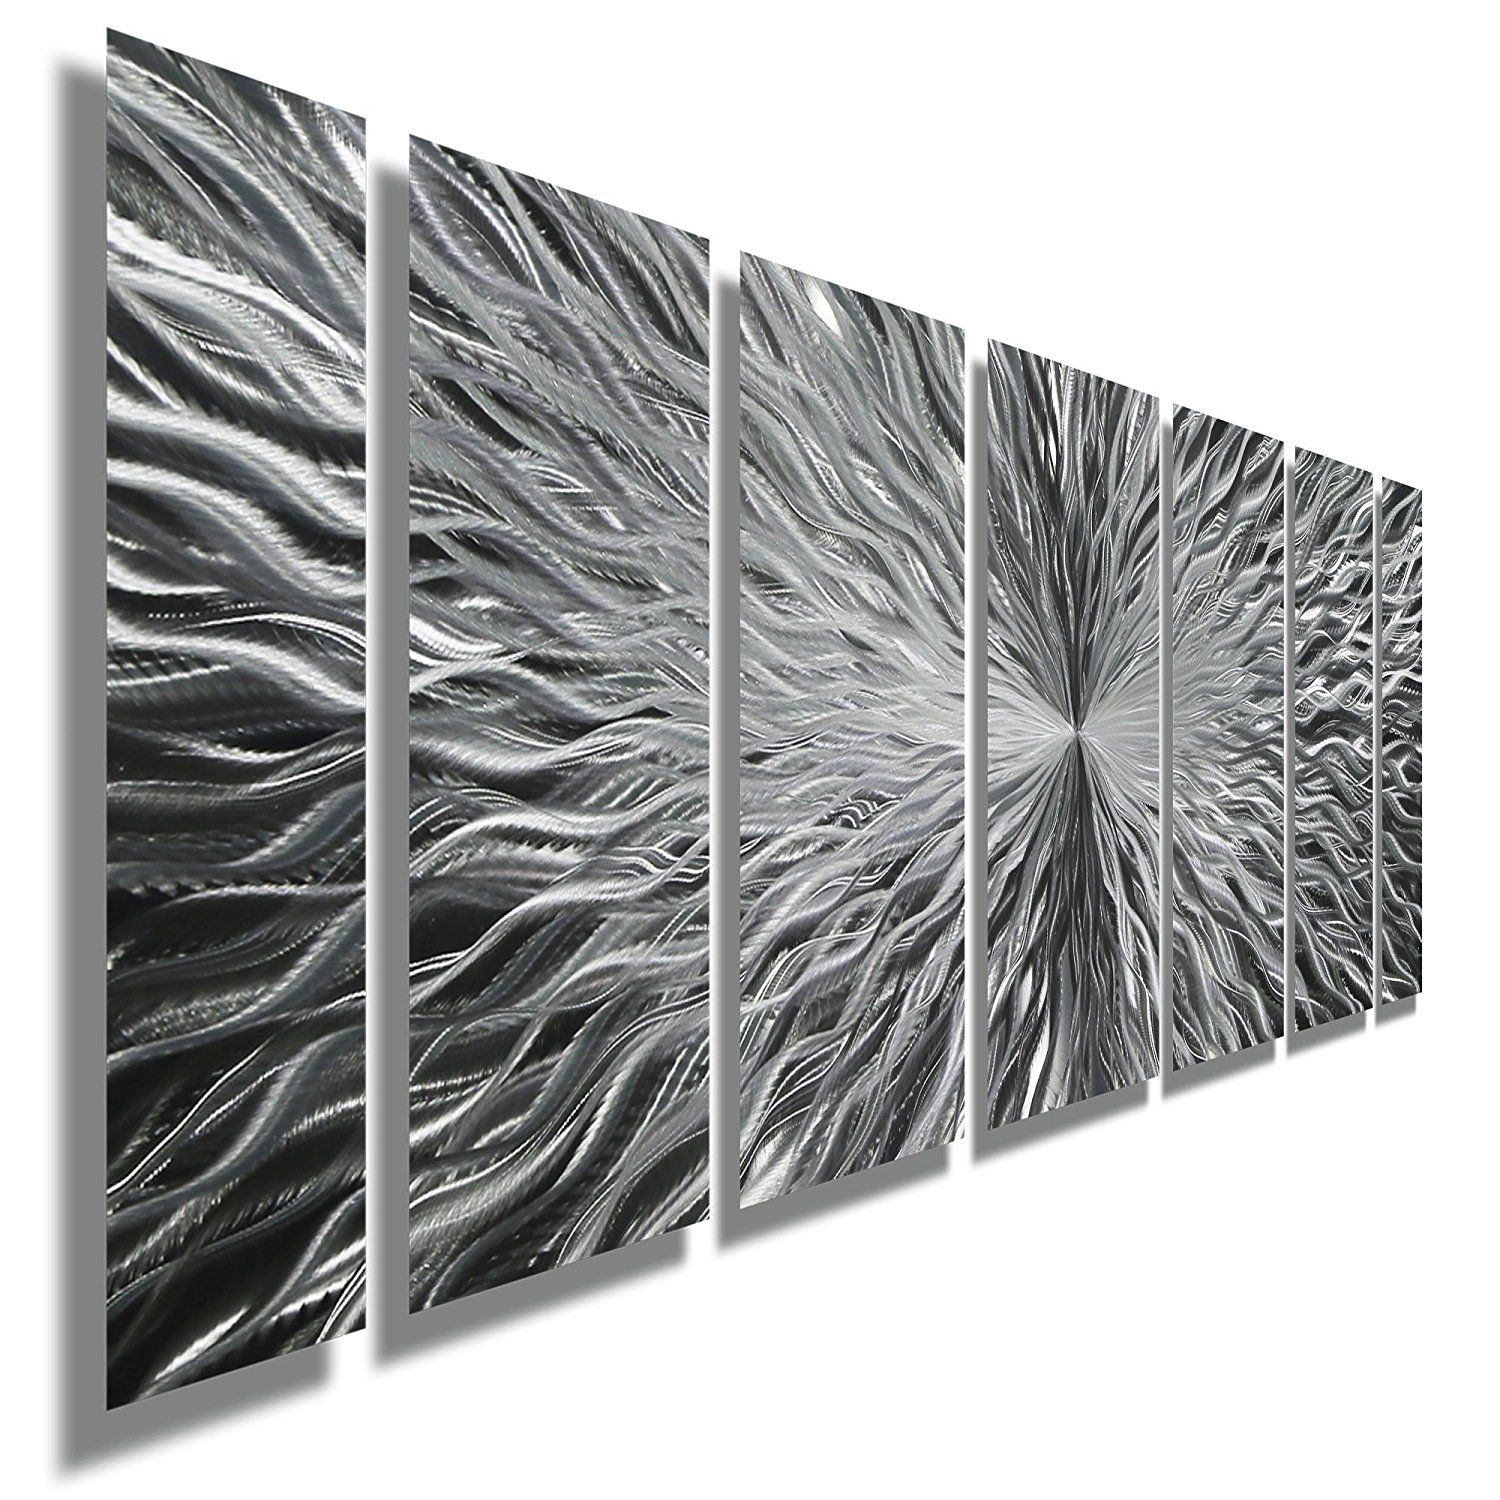 Silver Contemporary Metal Wall Art Abstract Home Decor Accent Modern Panel Vortex By Jon Allen Check This Awesome Image